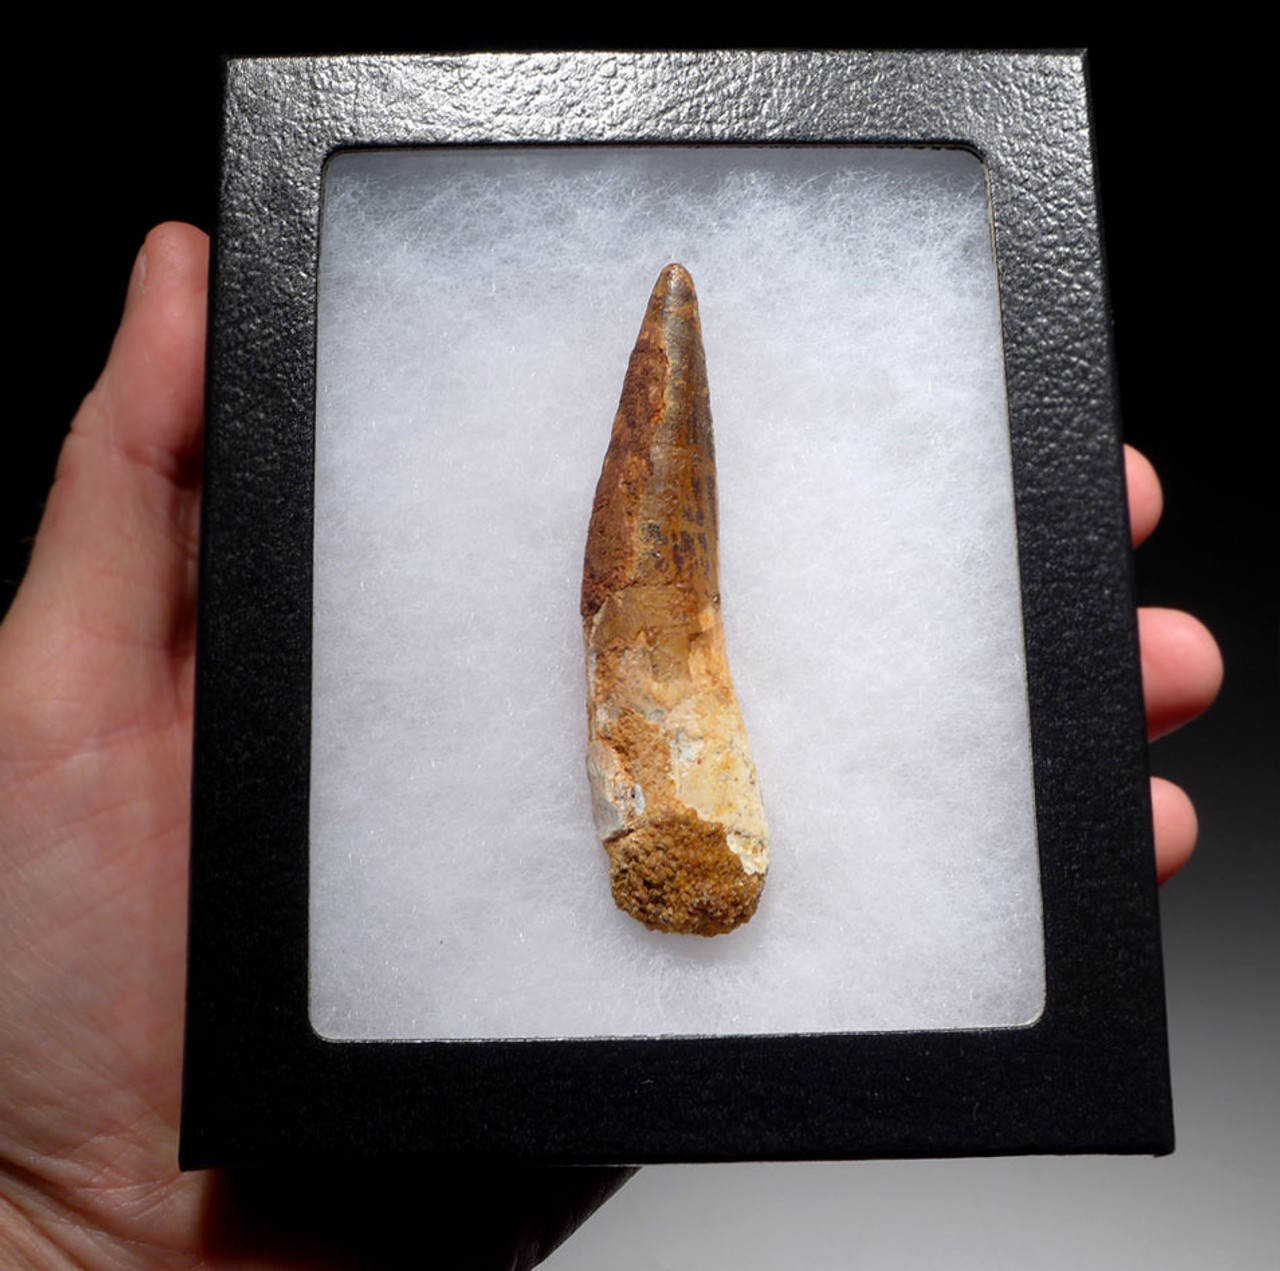 INEXPENSIVE 3.25 INCH SPINOSAURUS DINOSAUR FOSSIL TOOTH *DT5-429